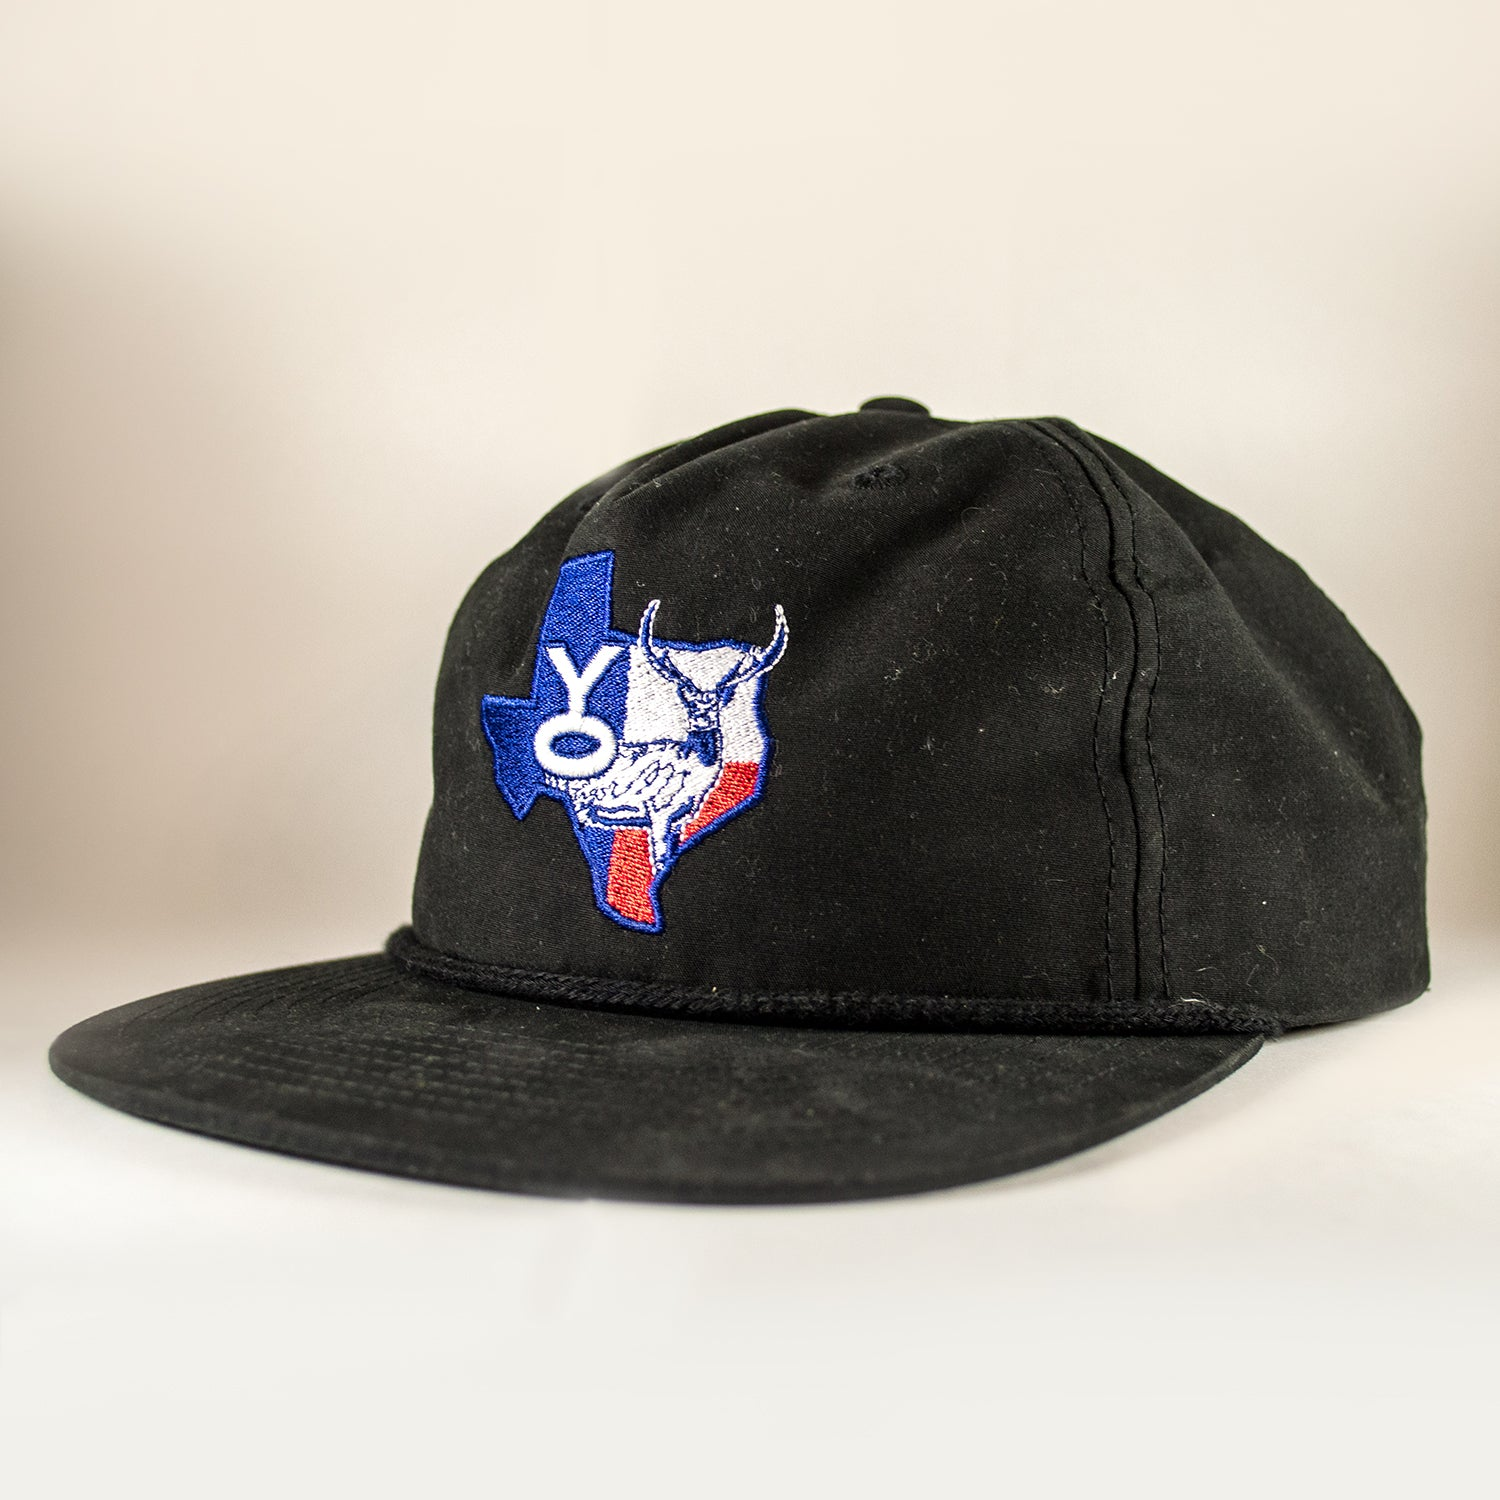 YO Texas Axis Patch Snapback - Black